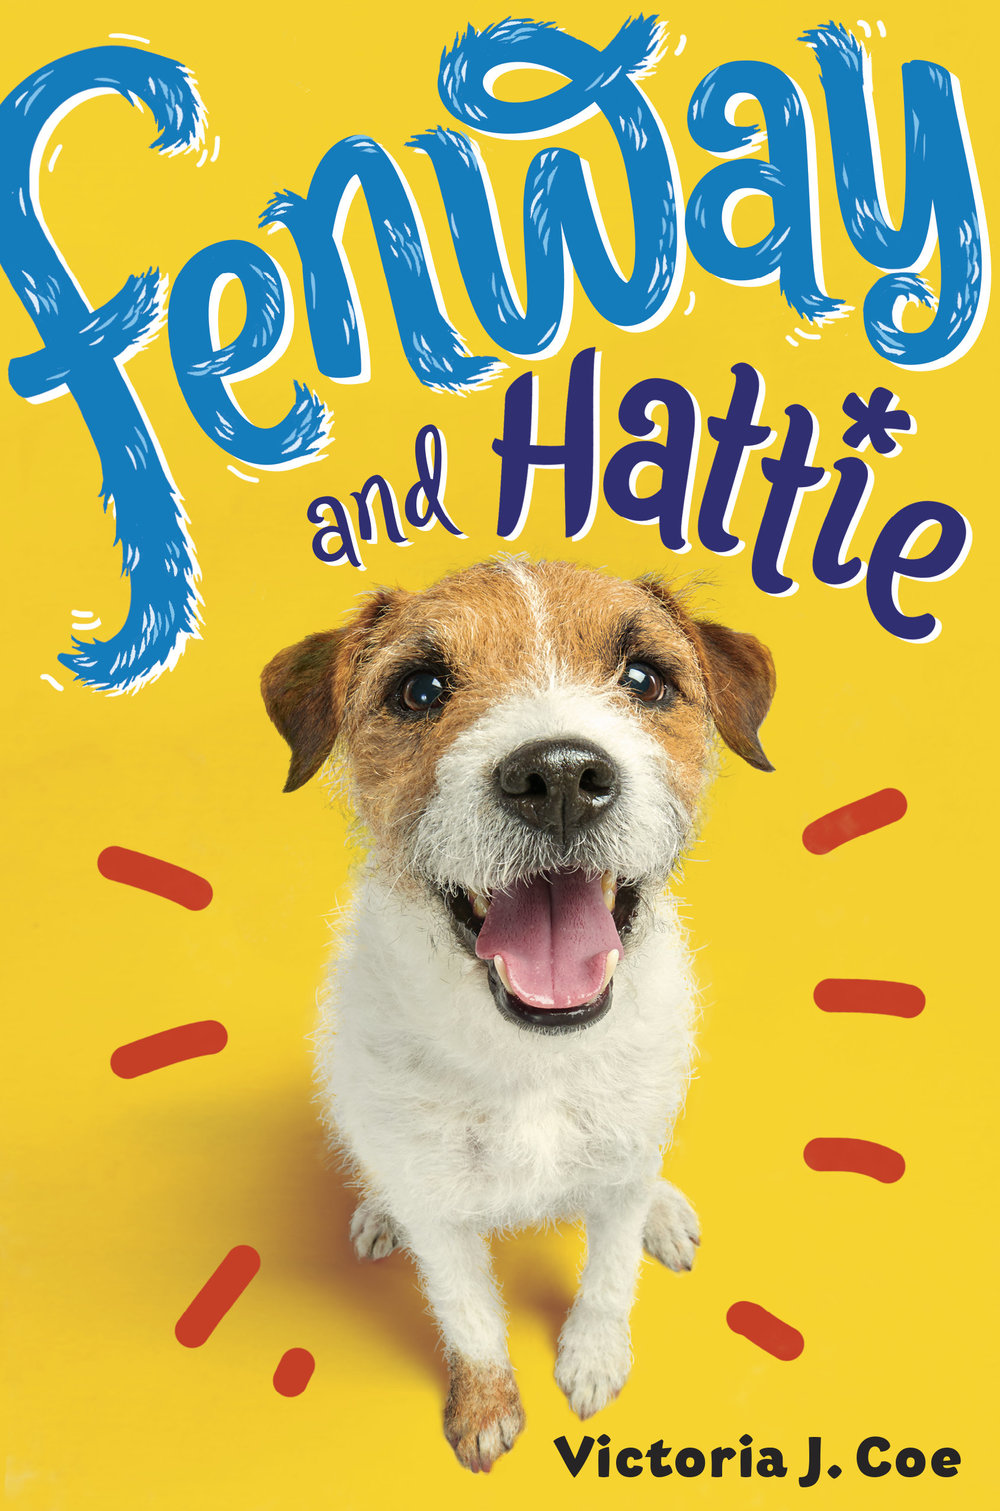 If you'll be reading FENWAY AND HATTIE as part of the 2017 Global Read Aloud, One School, One Book, or as a class read-aloud, here's a preview of my plans to support you... -